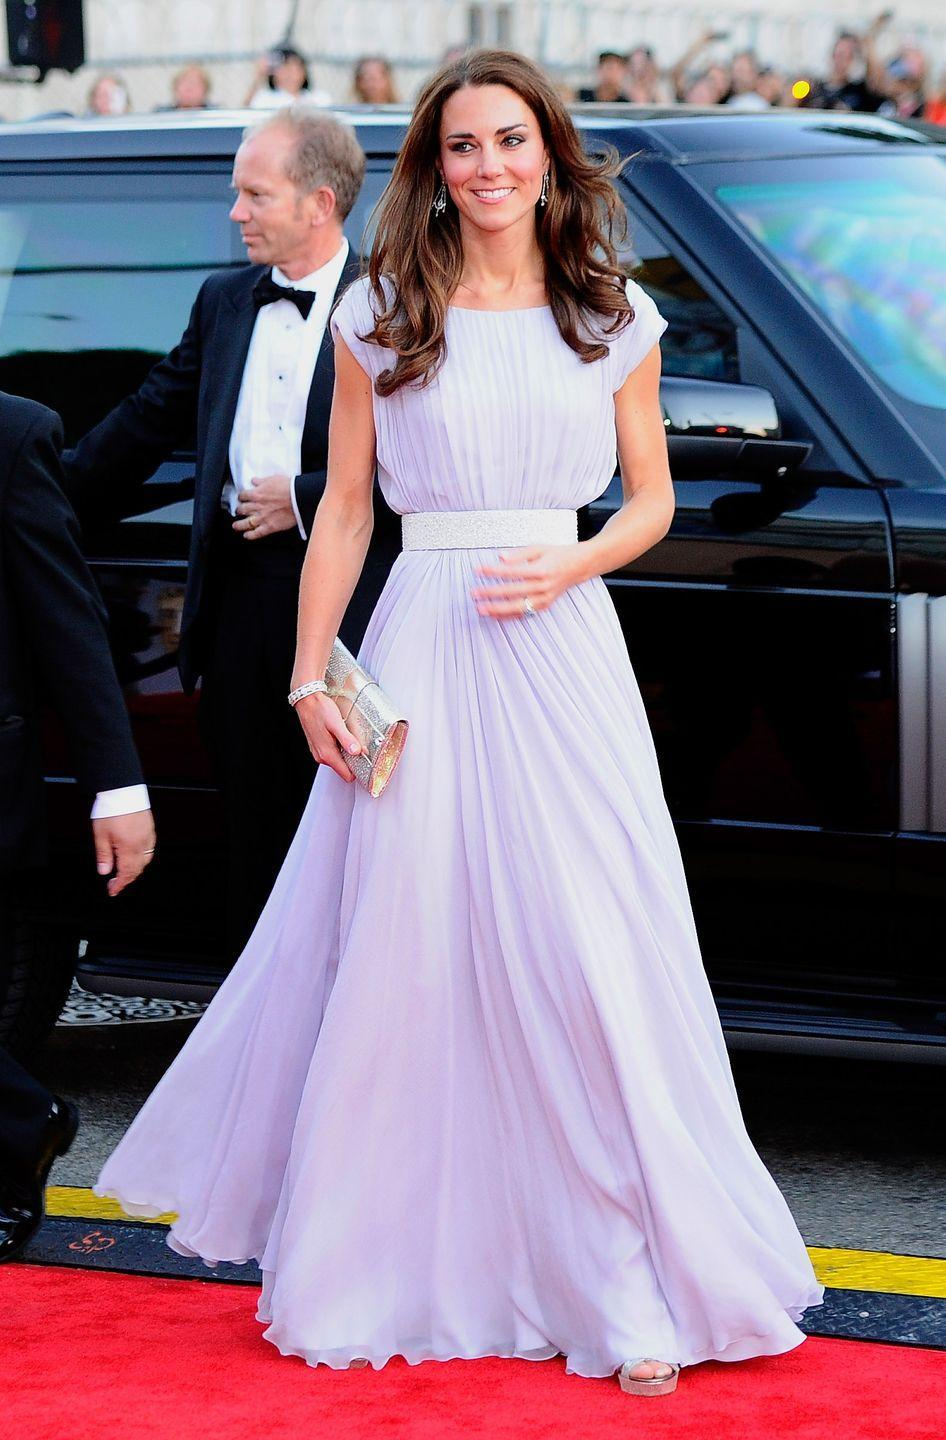 <p>The Duchess looked regal in a pale purple gown by Alexander McQueen while attending BAFTA Brits To Watch event in Los Angeles during a royal visit to North America. </p>